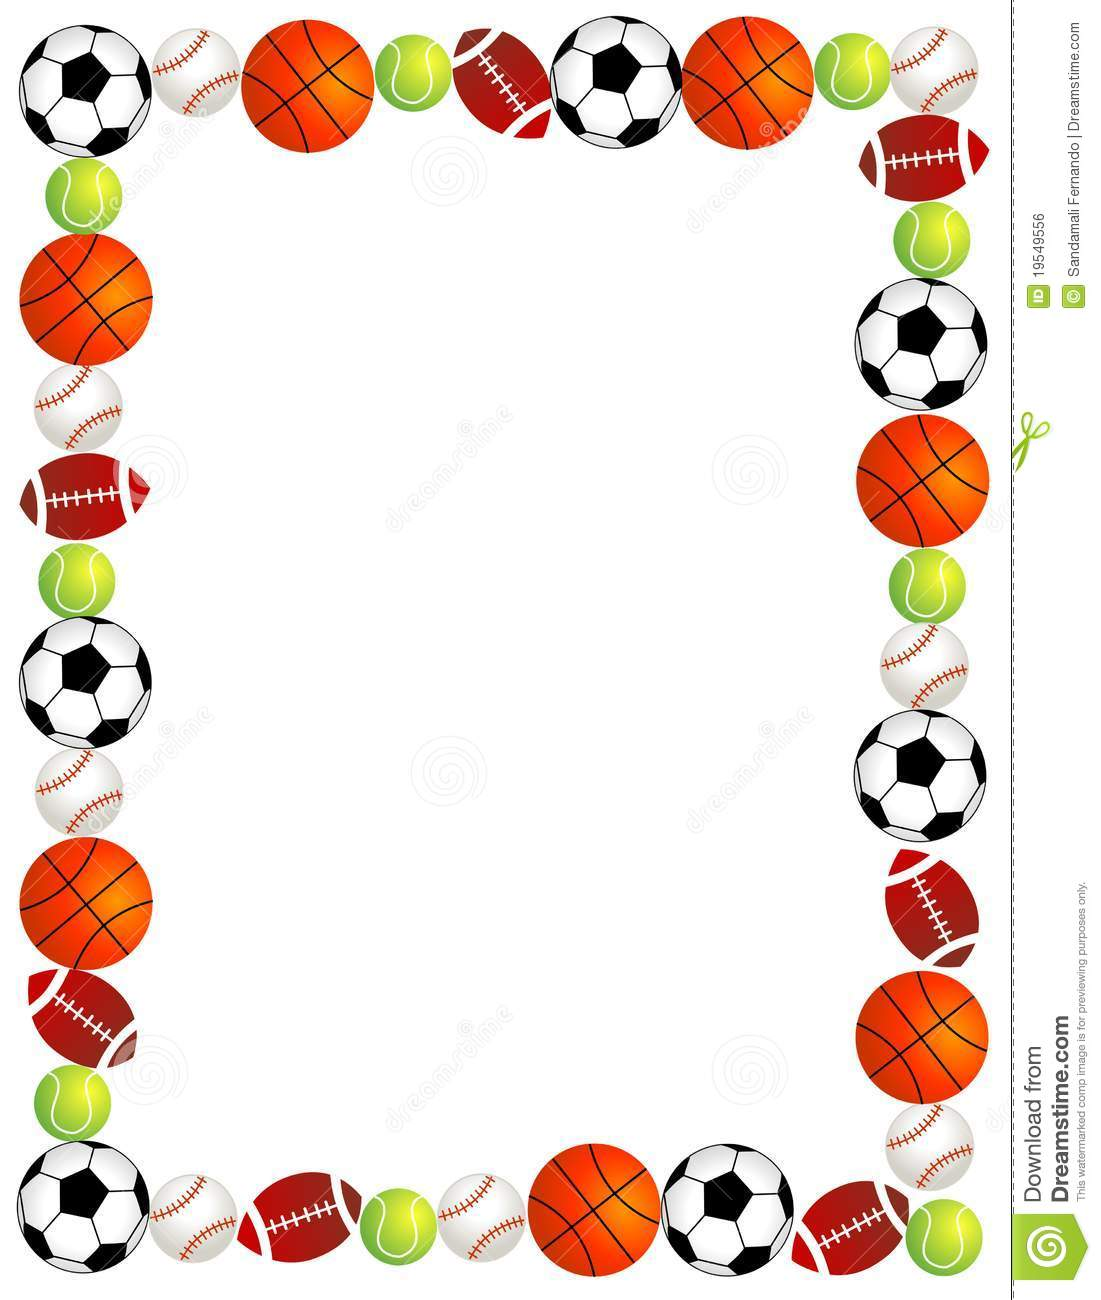 Sport balls stock vector. Illustration of border, abstract - 19549556